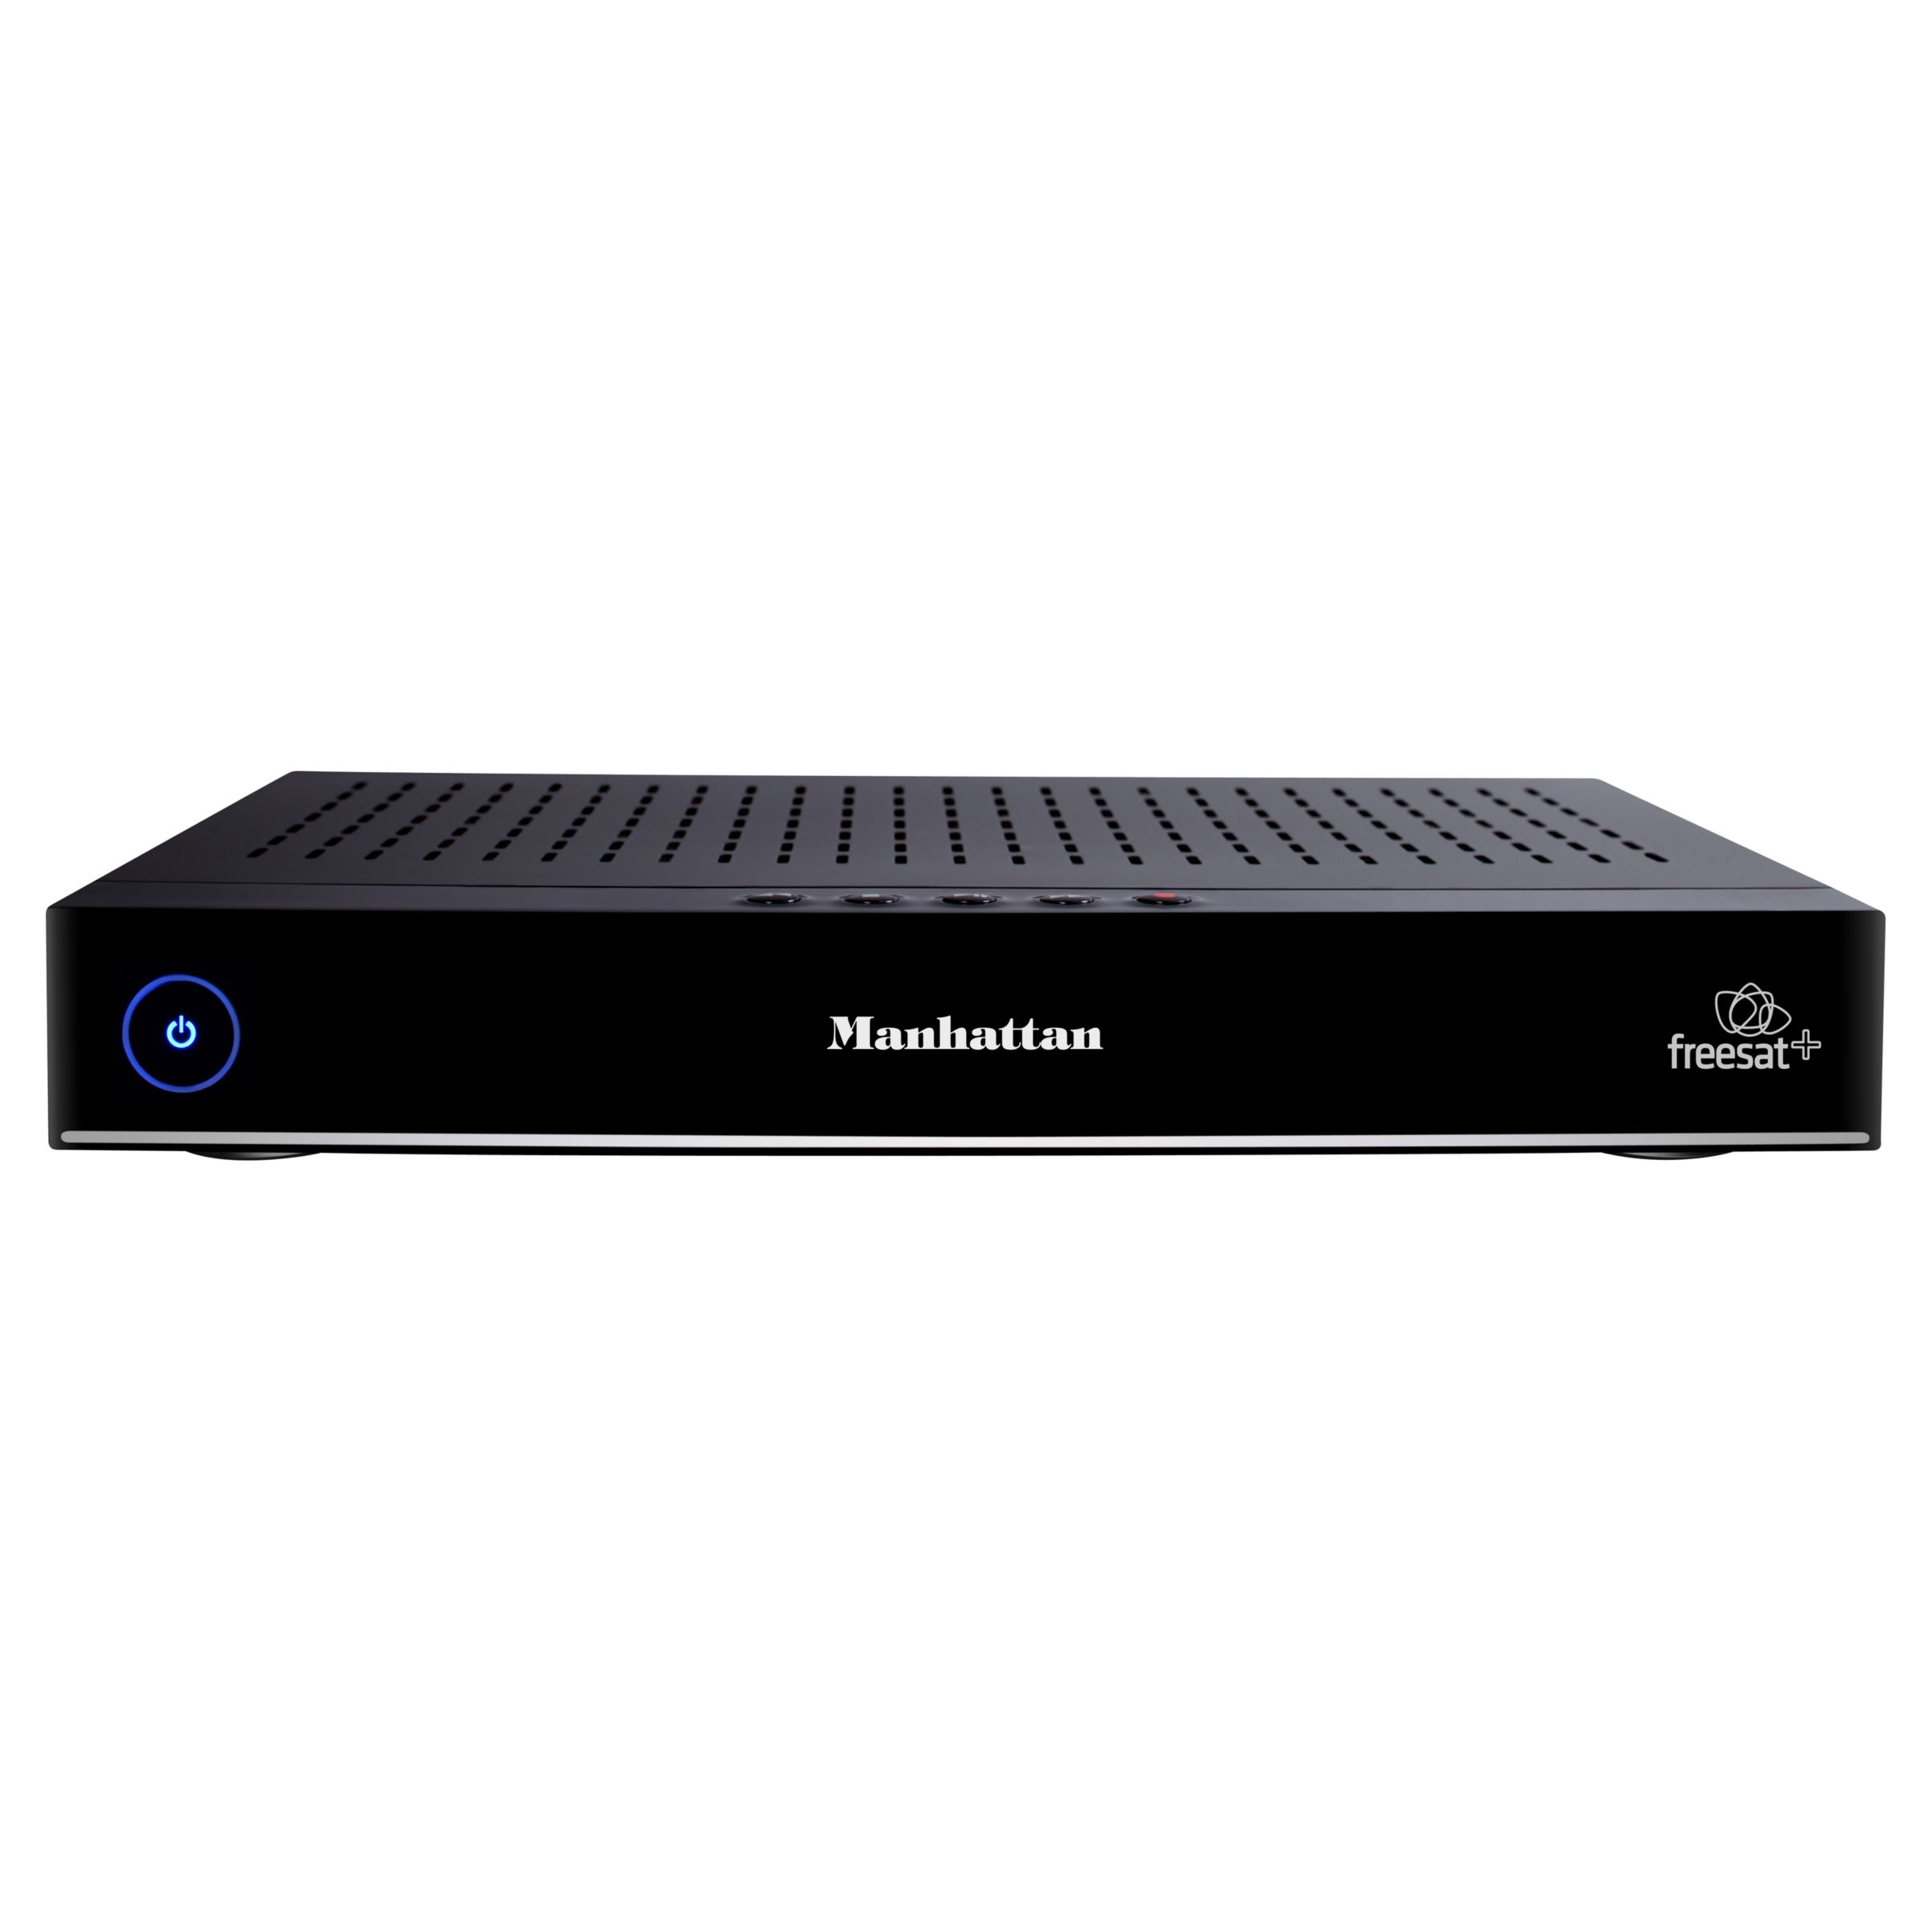 Manhattan Plaza HDRS Smart 500GB freesat HD Digital TV Recorder